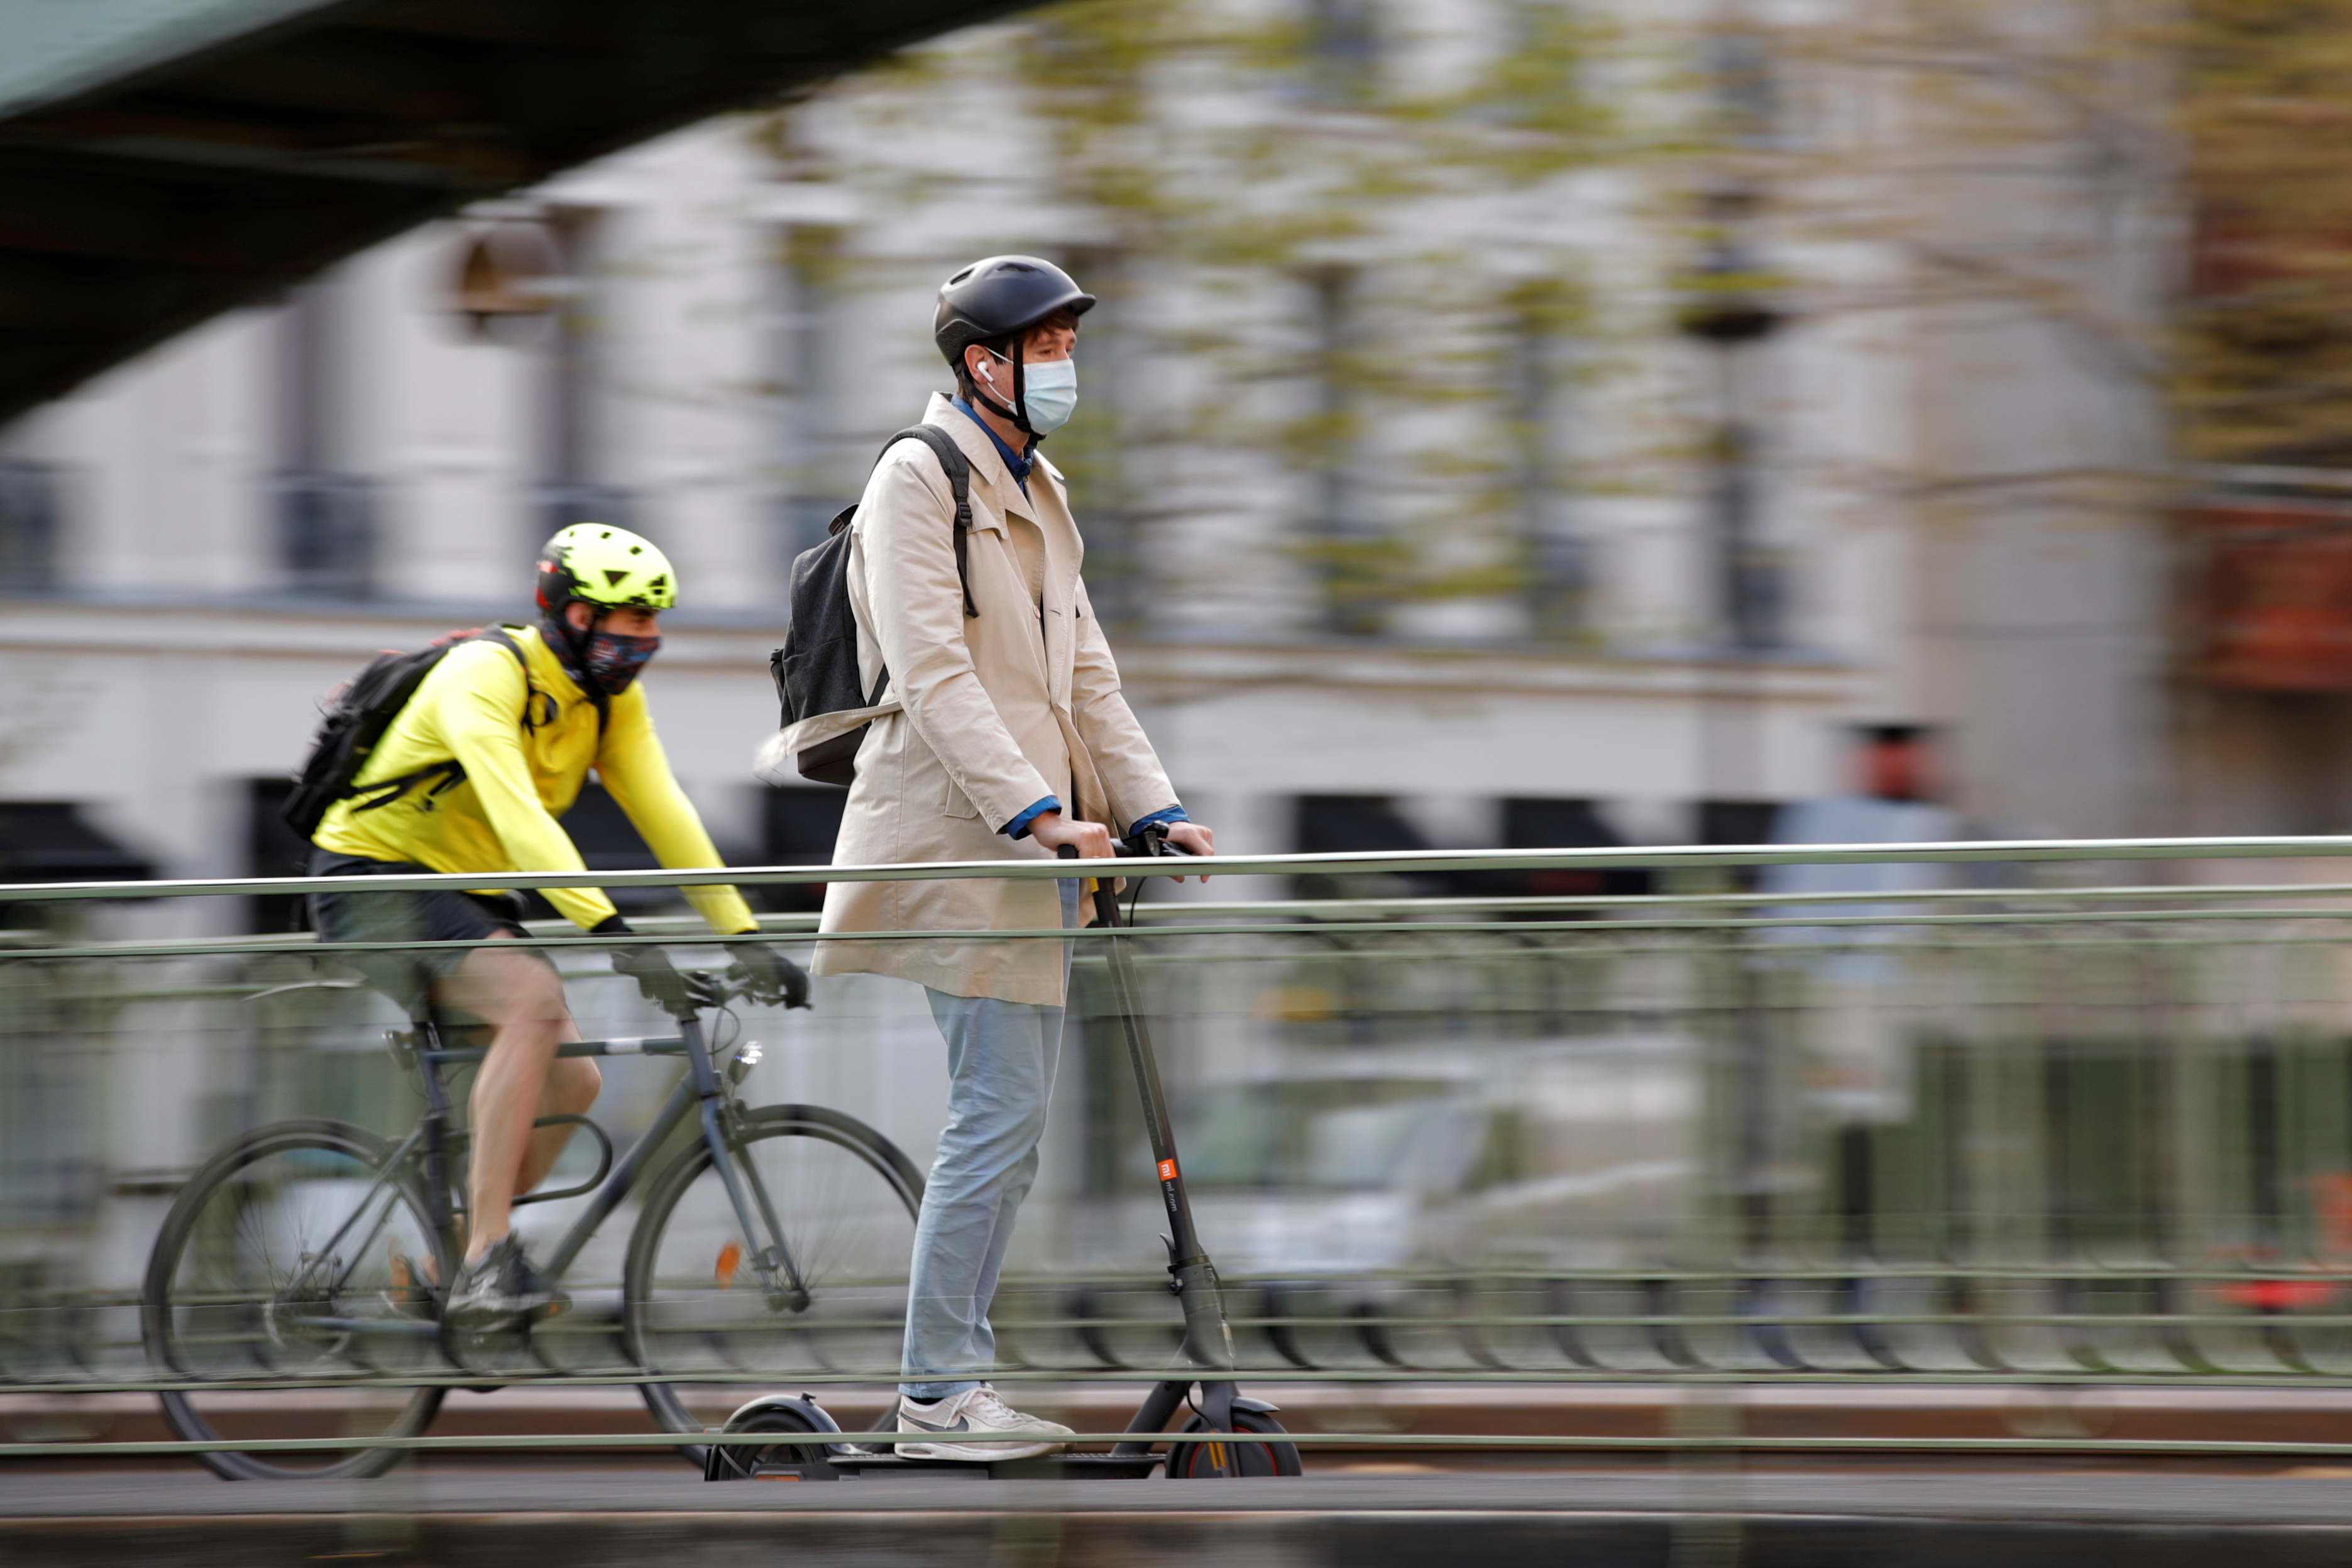 A man, wearing a protective face mask, rides a scooter past a biker on a bridge over the canal Saint-Martin in Paris amid the coronavirus (COVID-19) outbreak in France, April 22, 2021. REUTERS/Sarah Meyssonnier